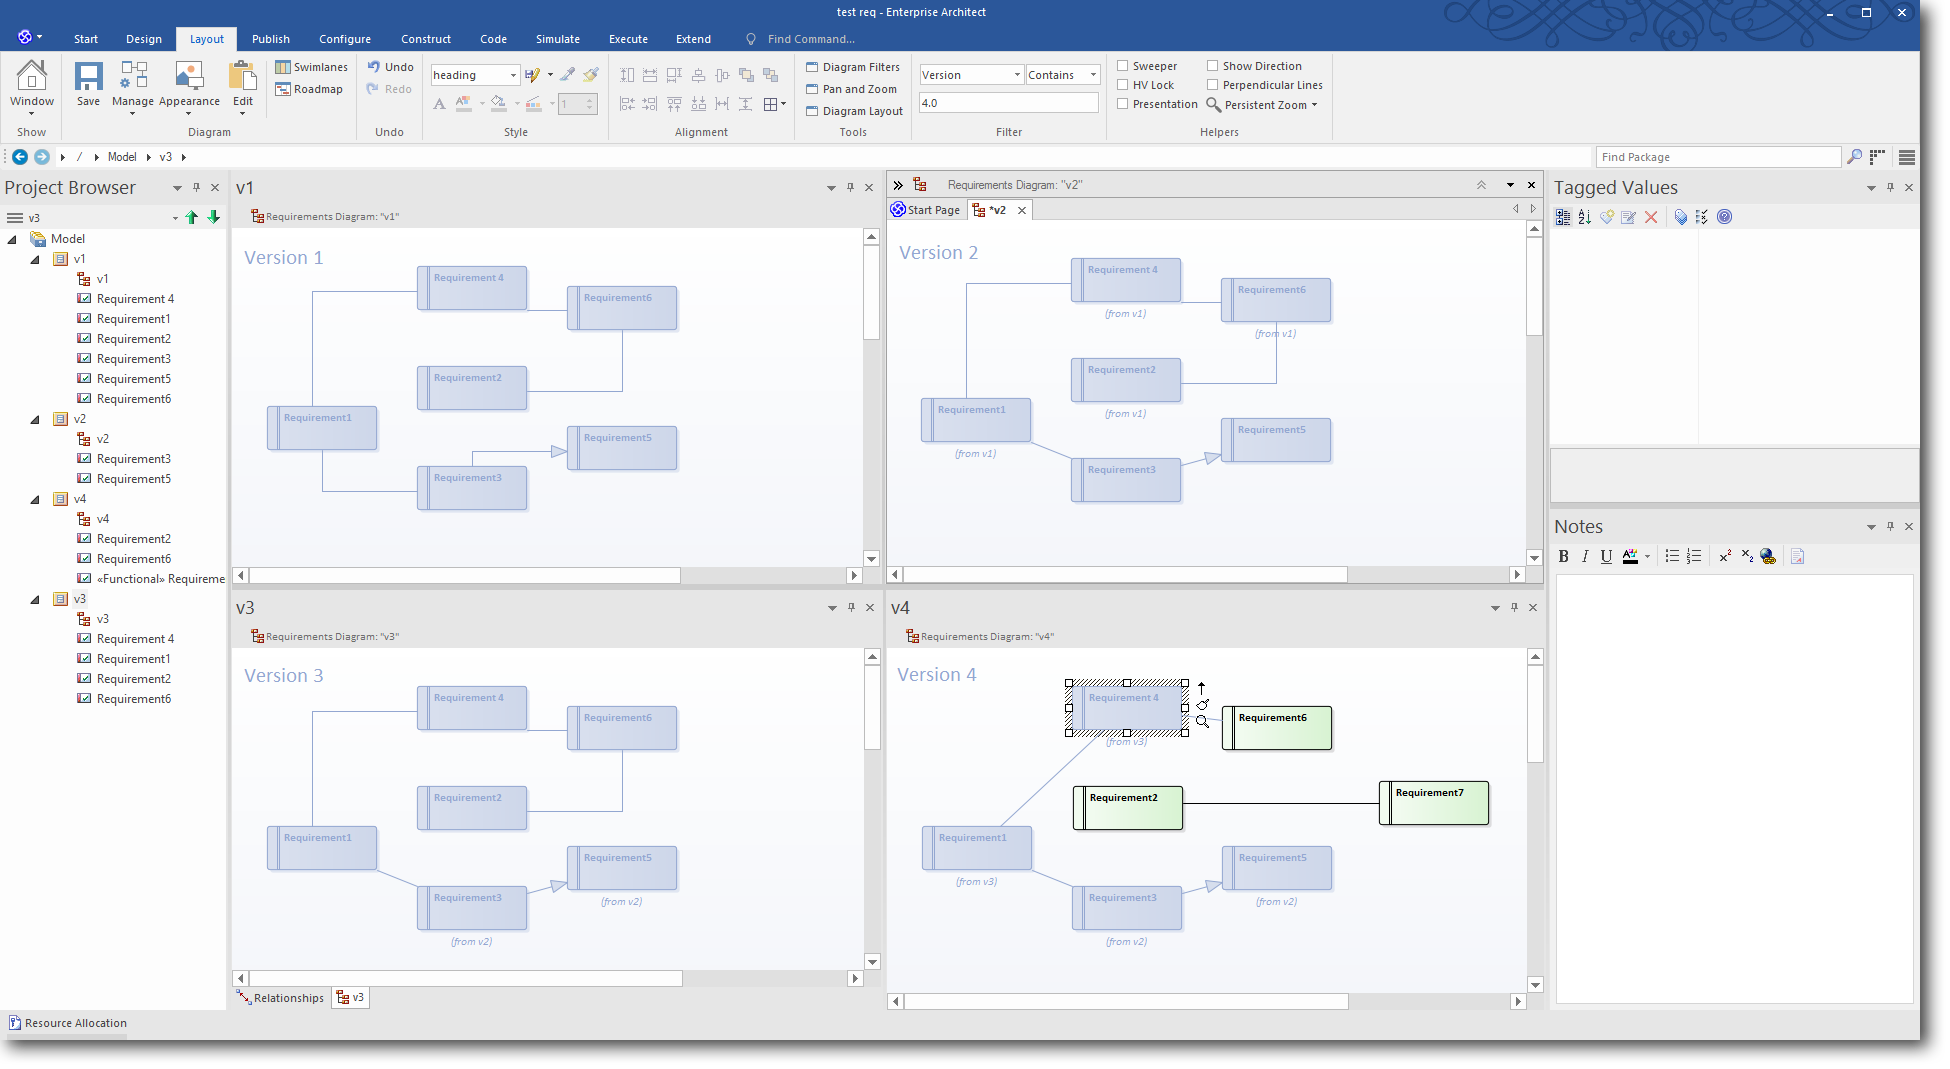 Enterprise Architect 13: Time Aware Modeling - Using a Diagram Filter to highlight Version 4.0 elements